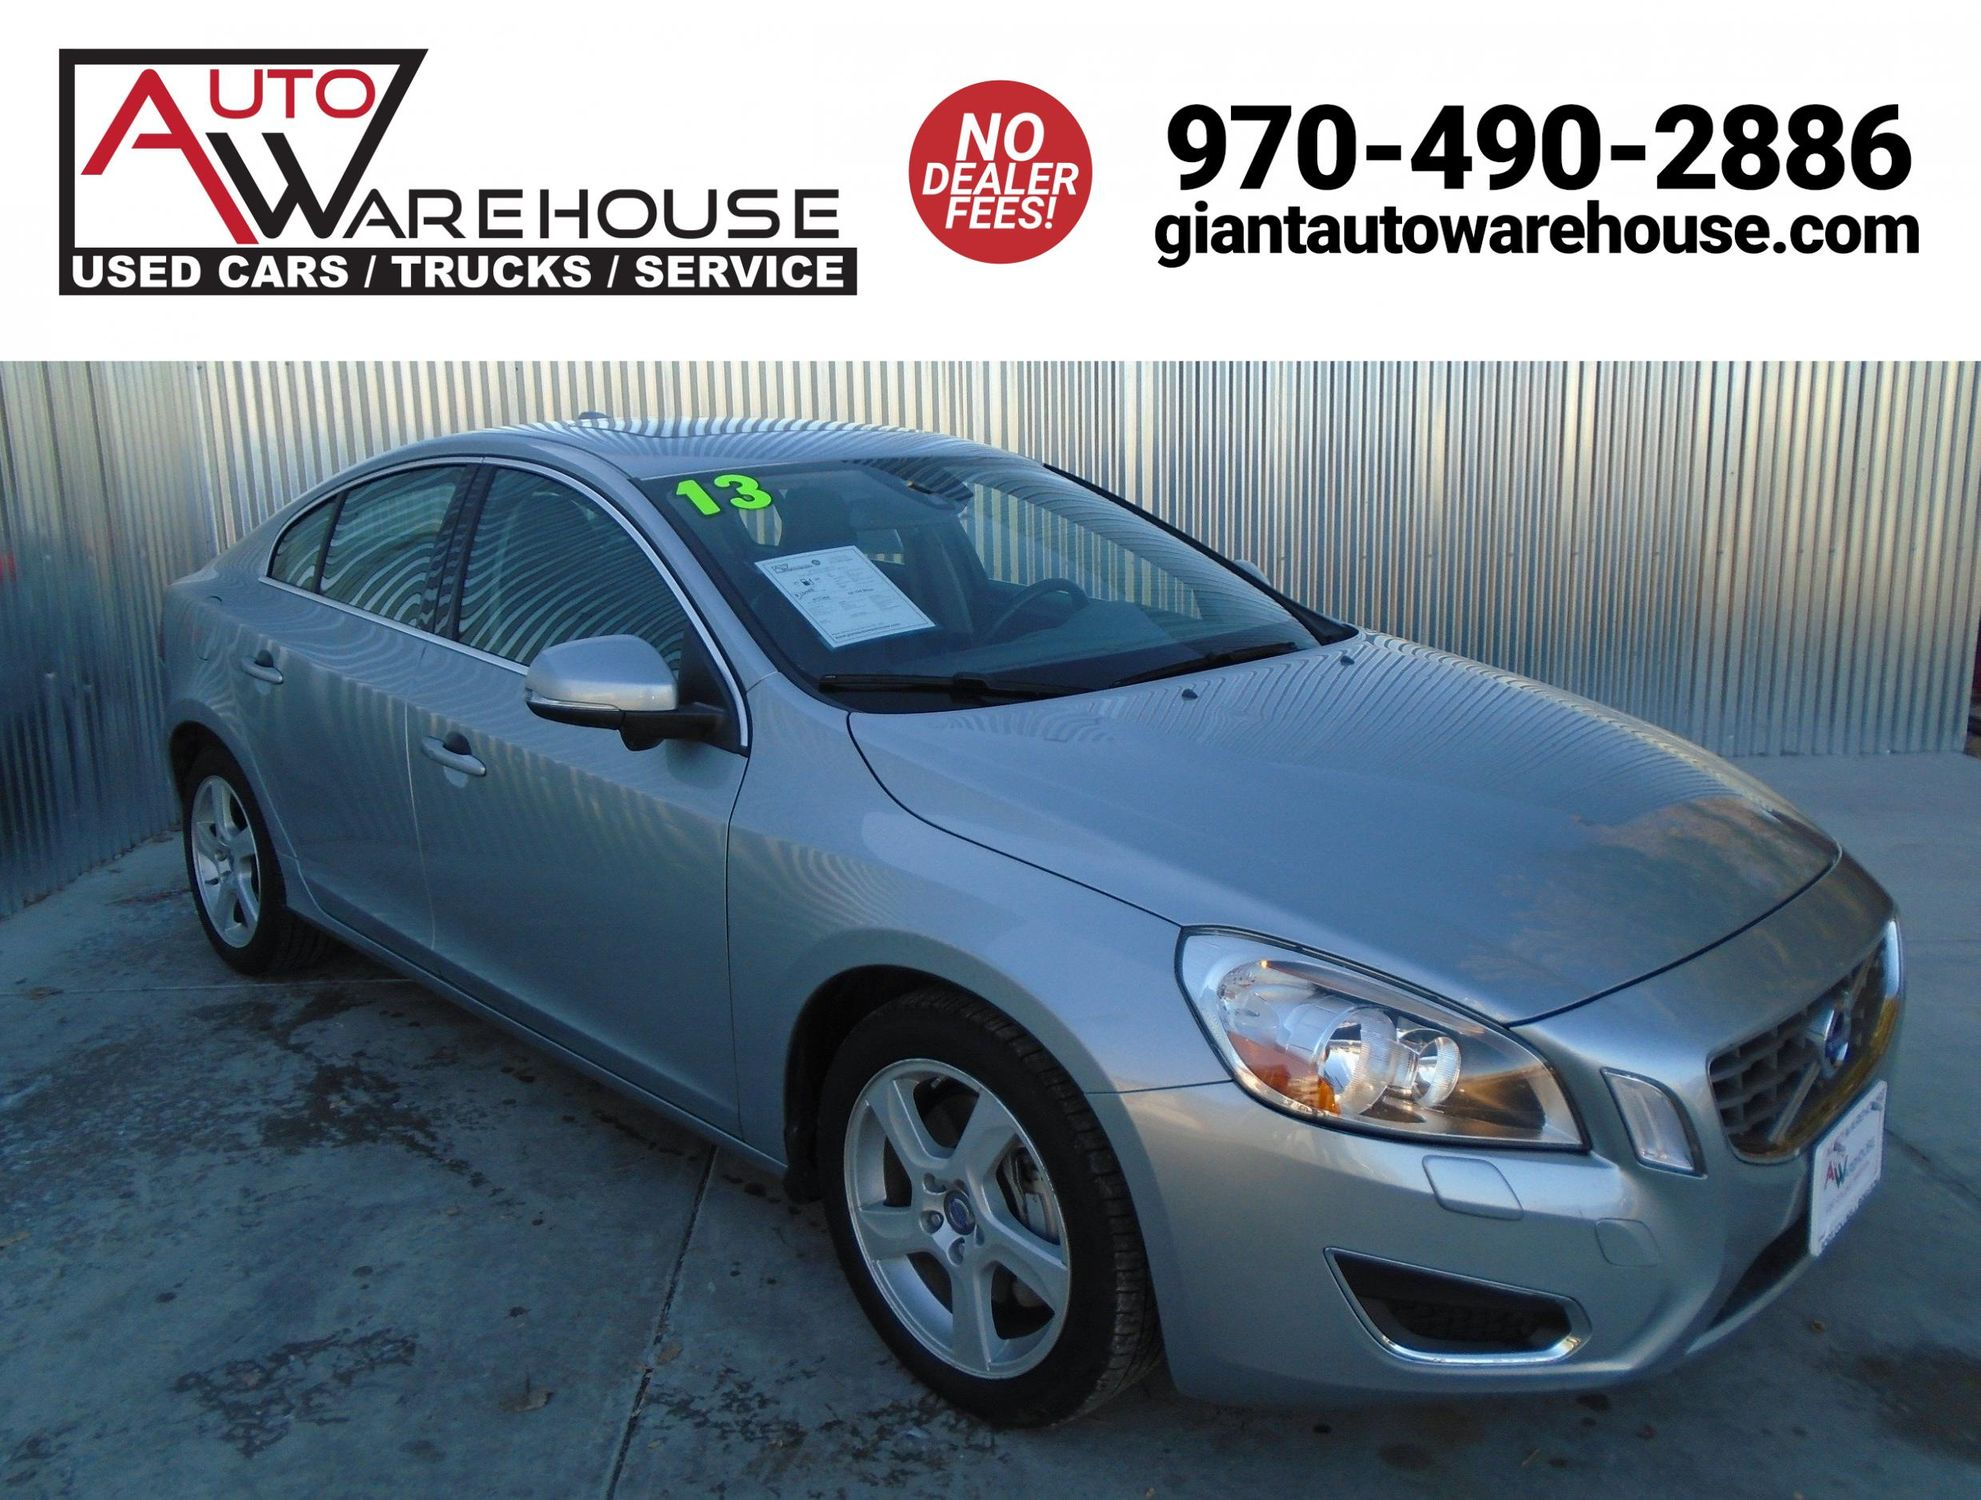 2013 Volvo S60 T5 | Auto Warehouse